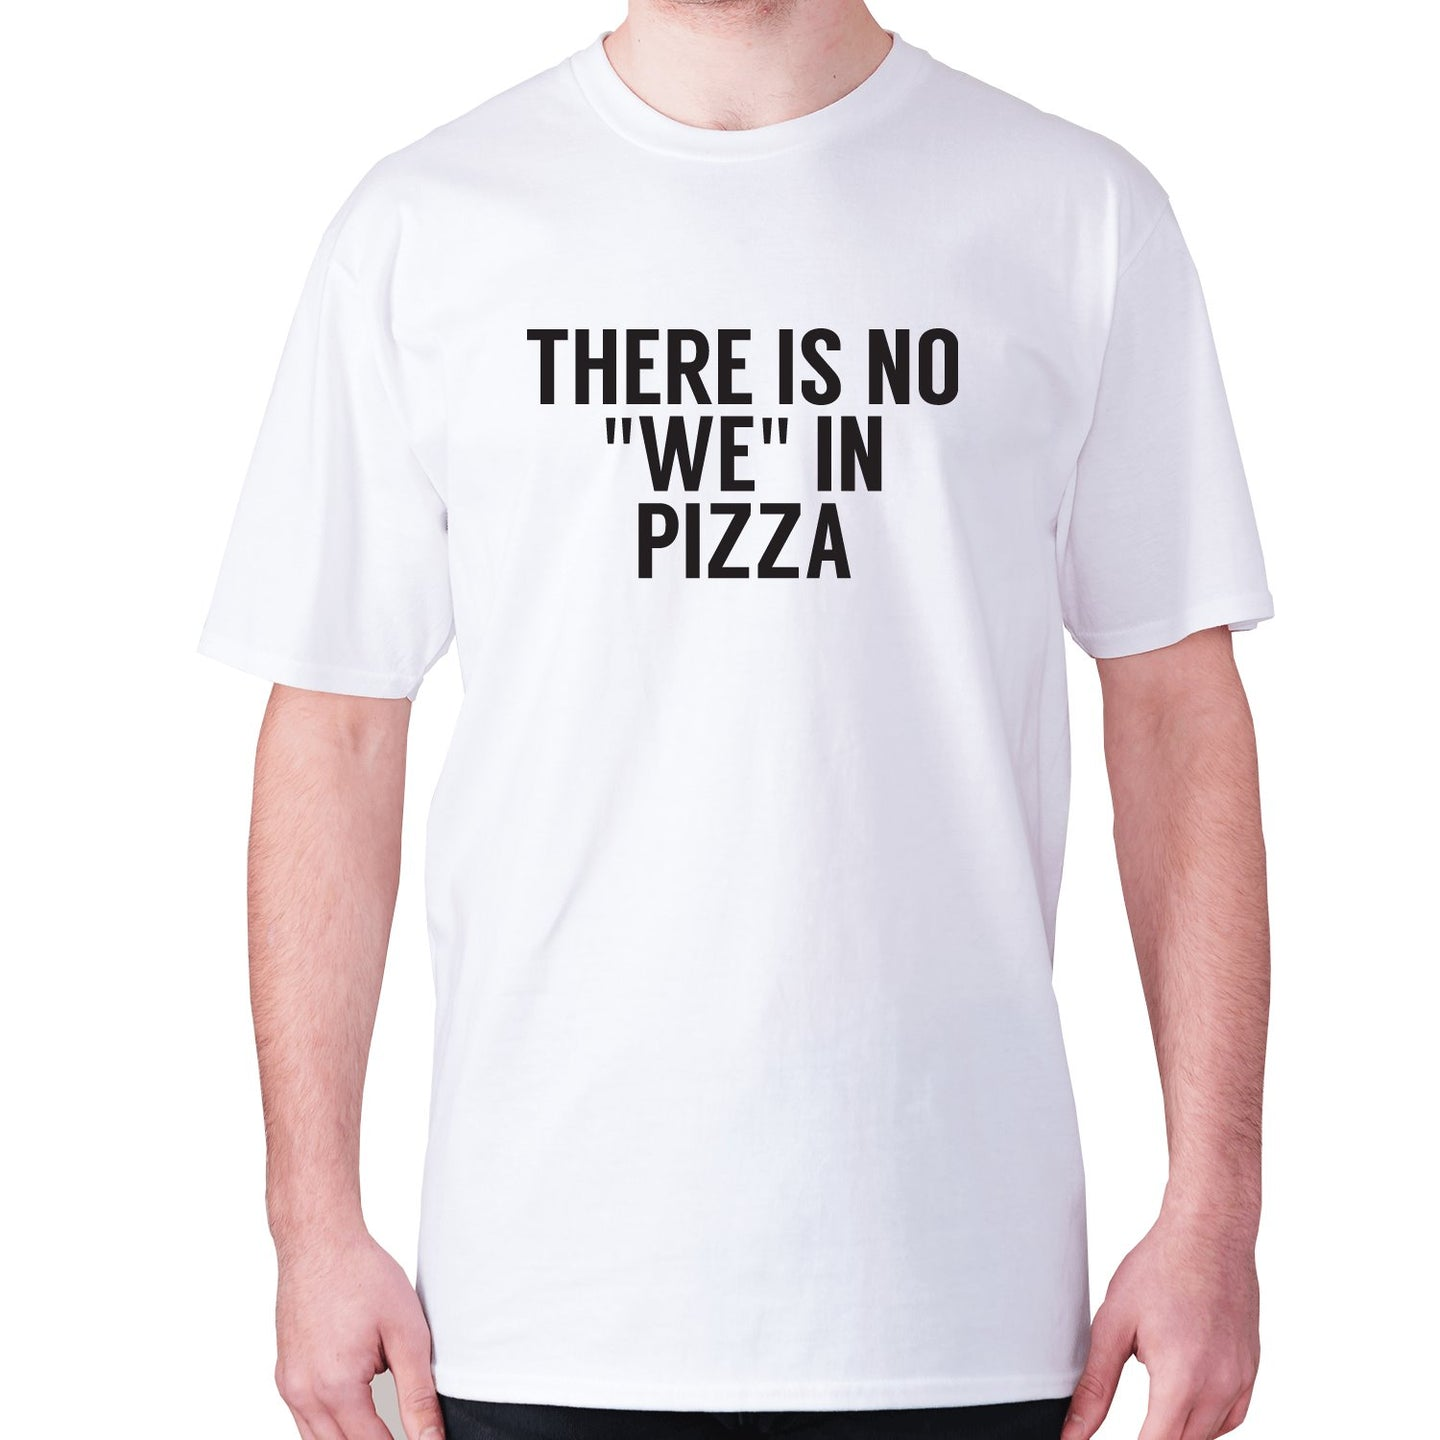 There is no we in pizza - men's premium t-shirt - White / S - Graphic Gear